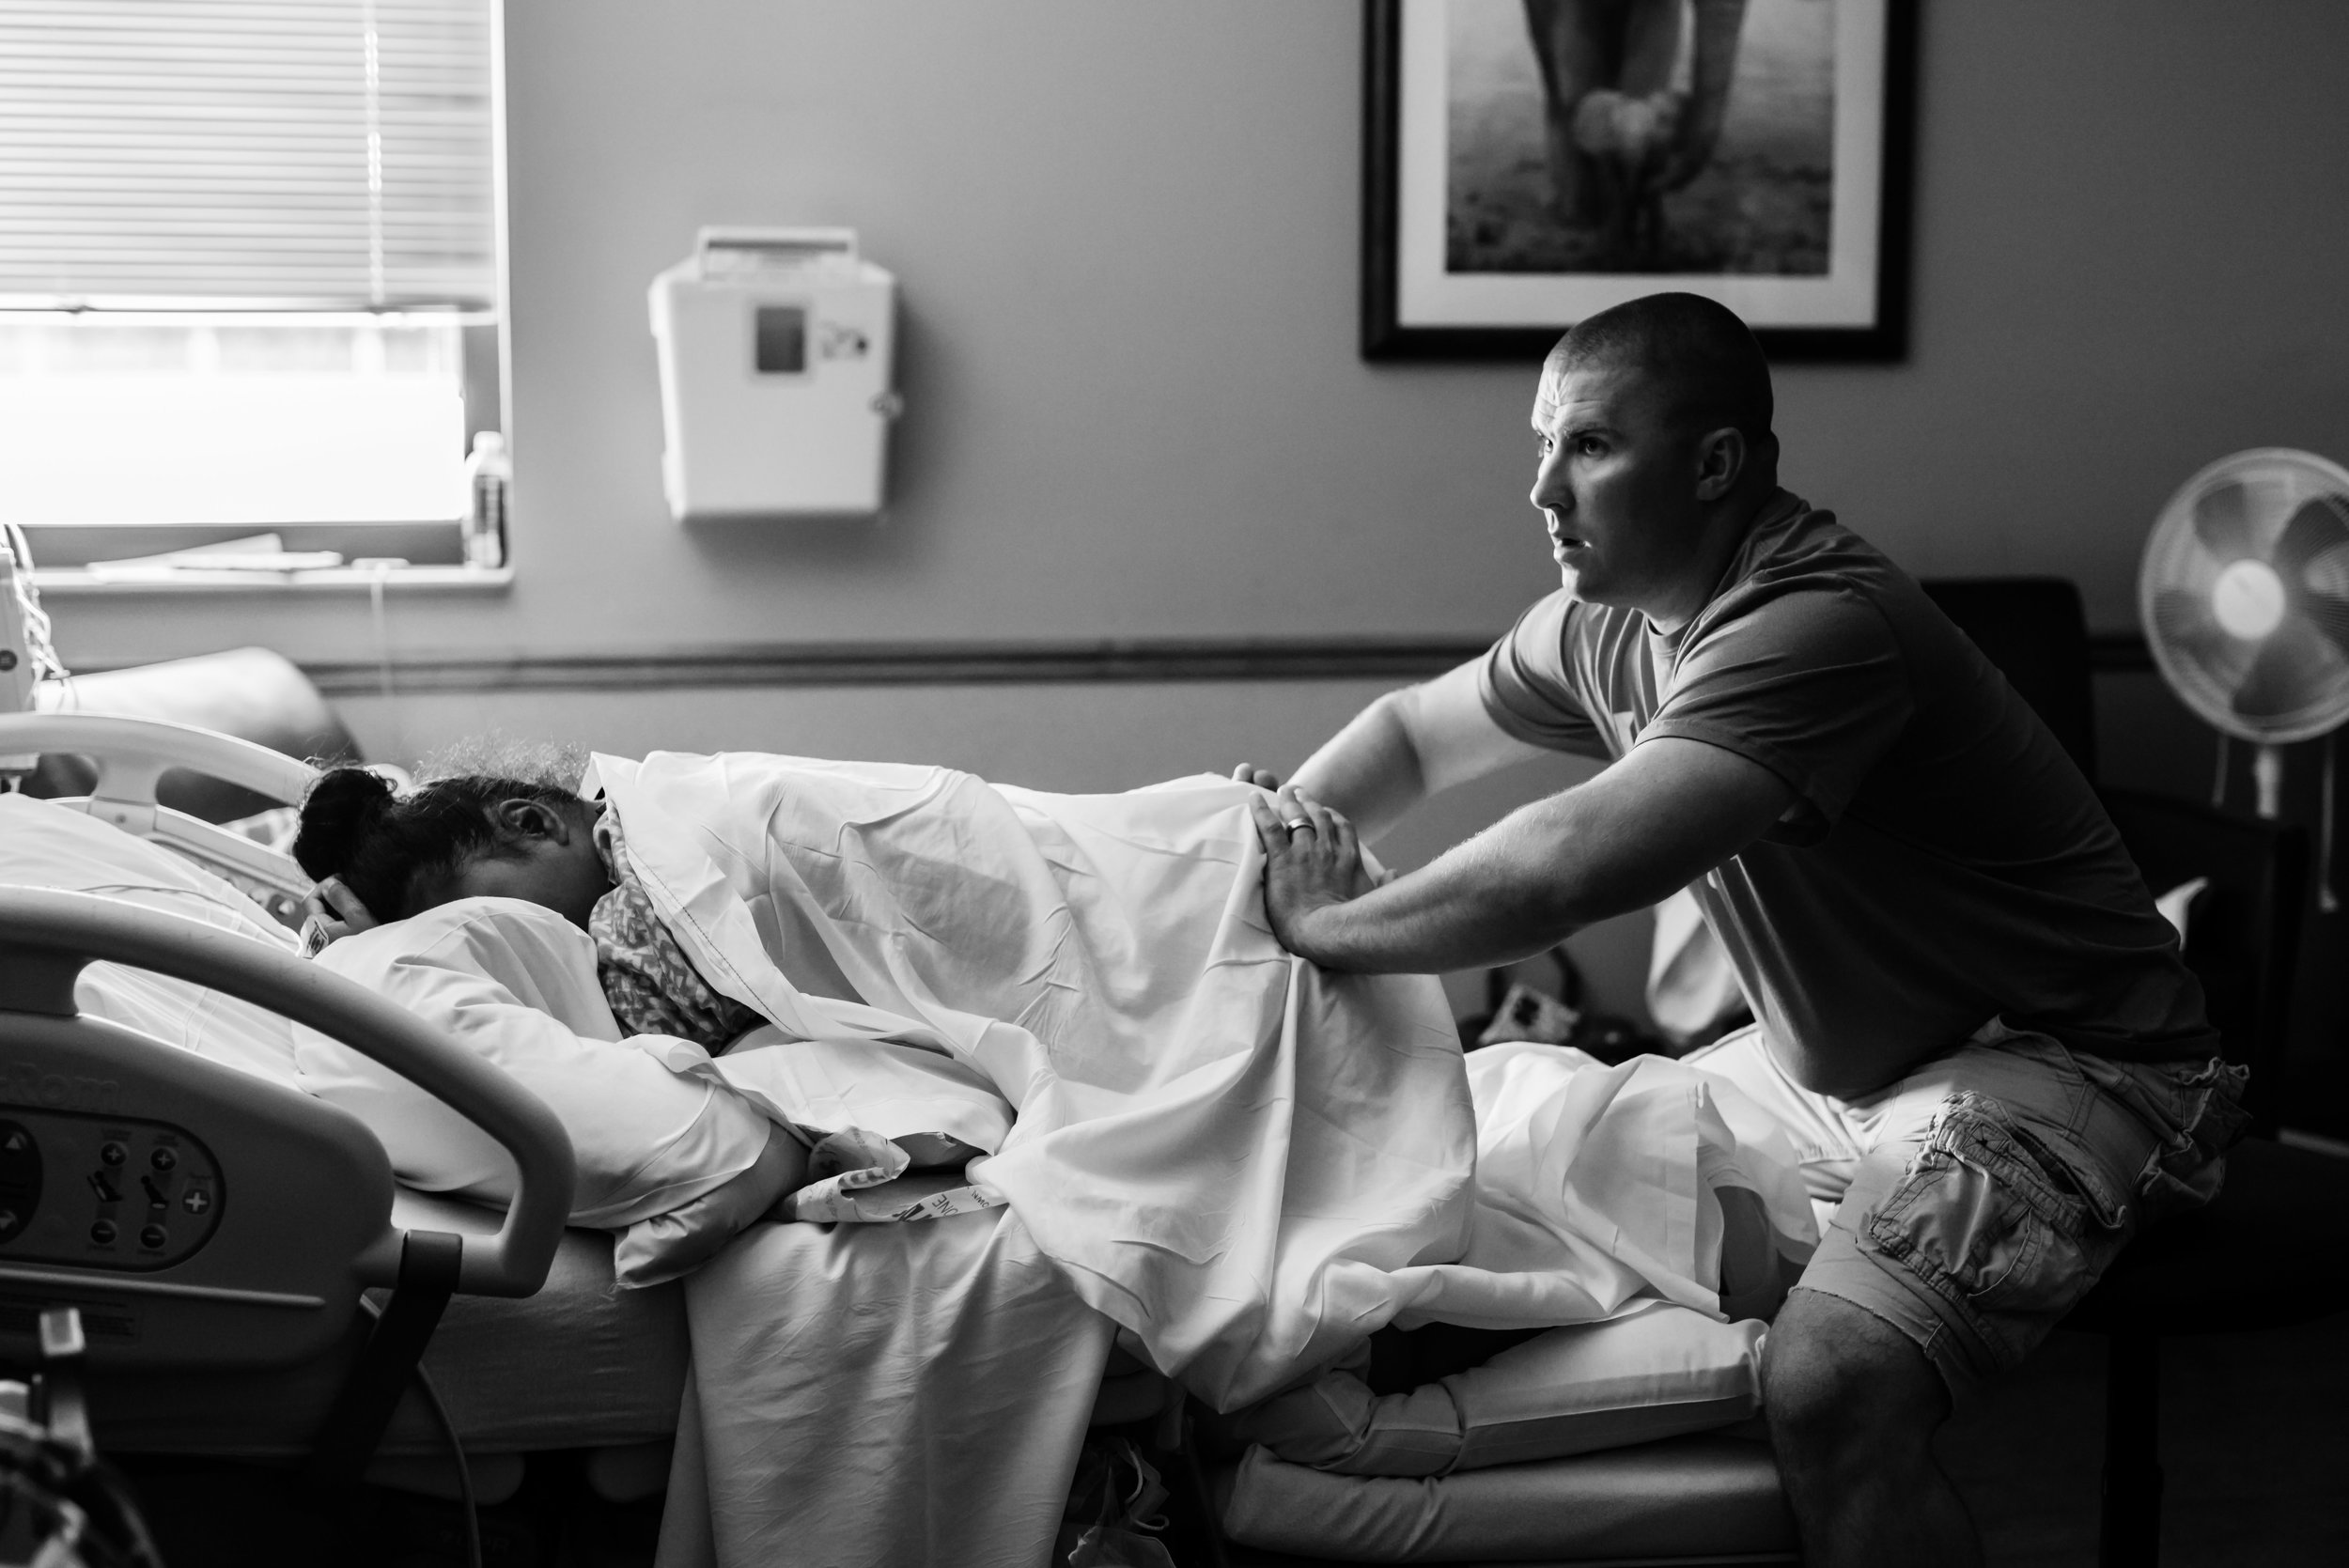 dad applying counter pressure for mom's back labor at a hospital birth with junebug photography studio in manhattan, kansas